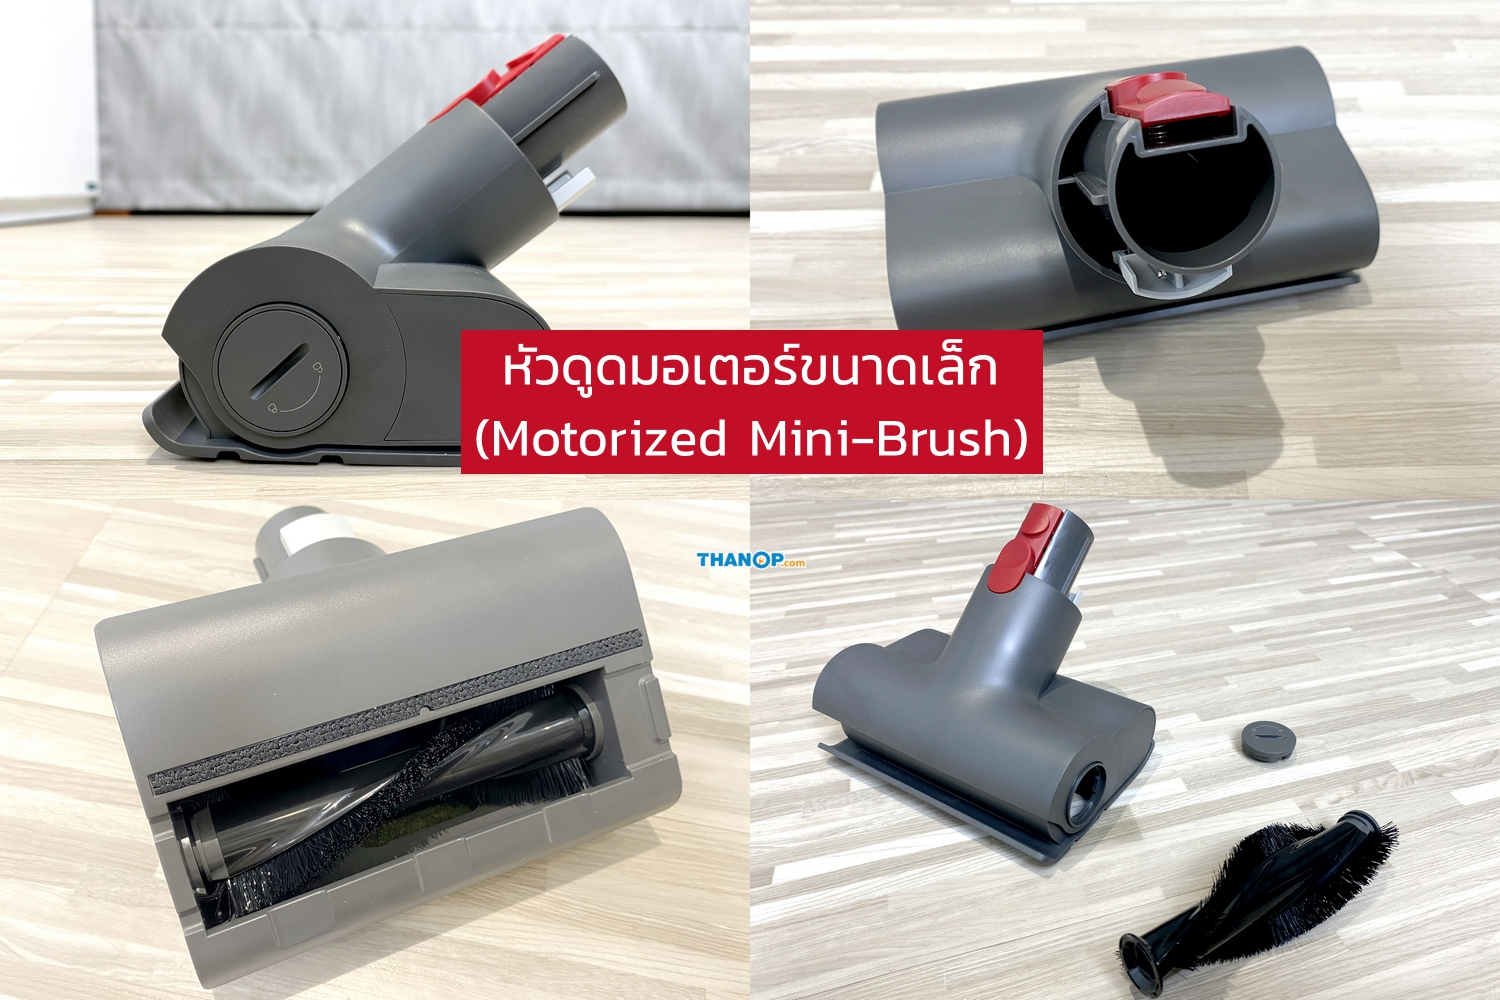 roborock-h6-motorized-mini-brush-detail